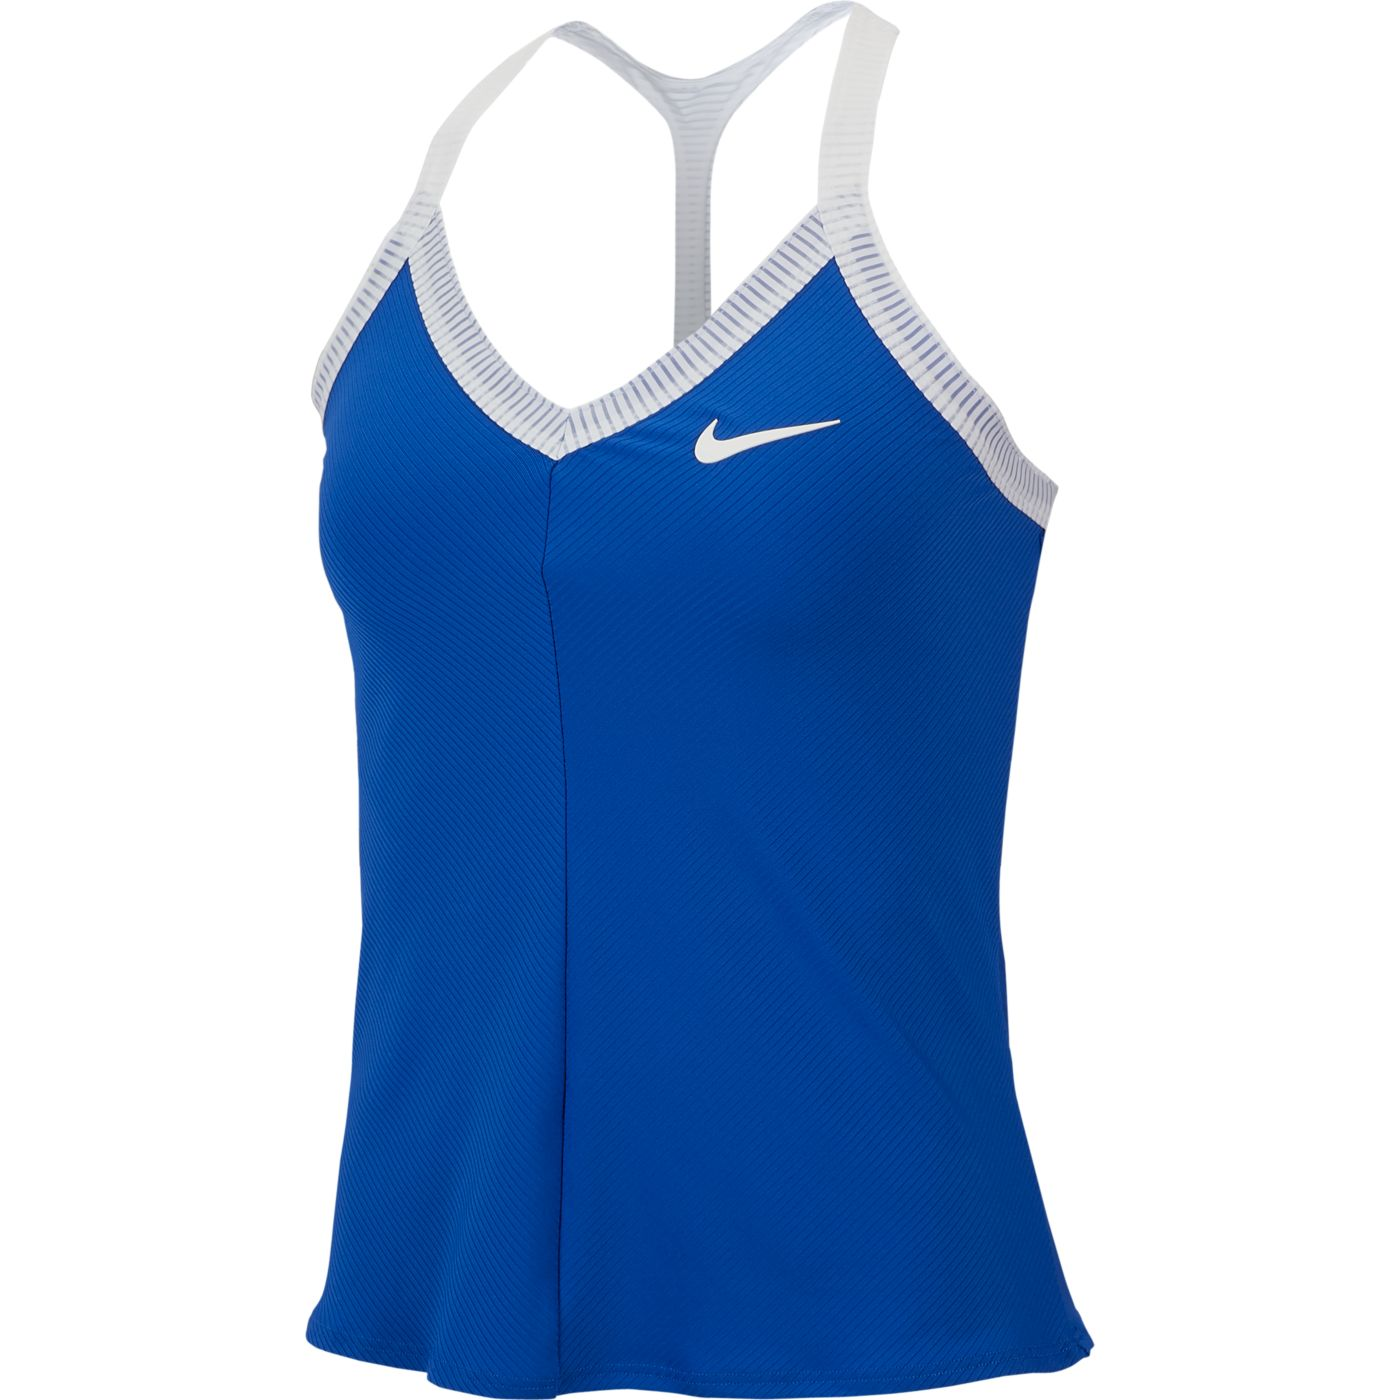 Nike Women's Maria Tennis Tank Top